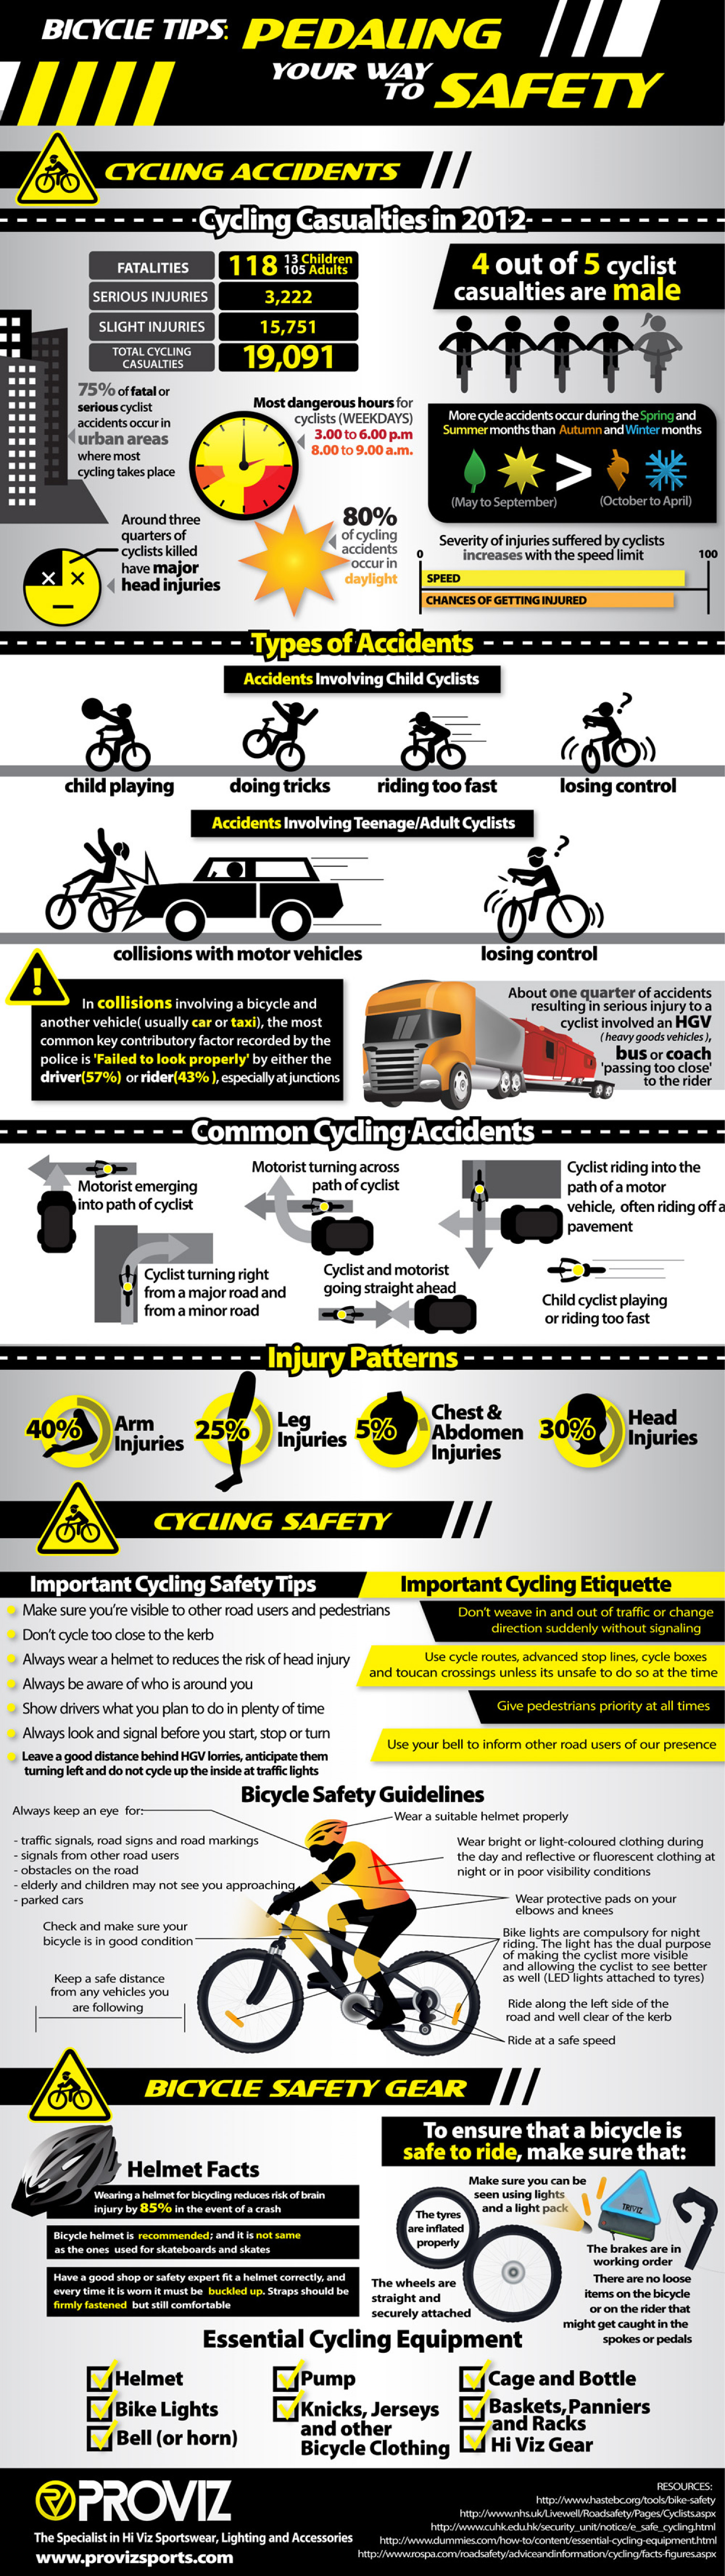 Bicycle Tips: Pedaling Your Way to Safety Infographic